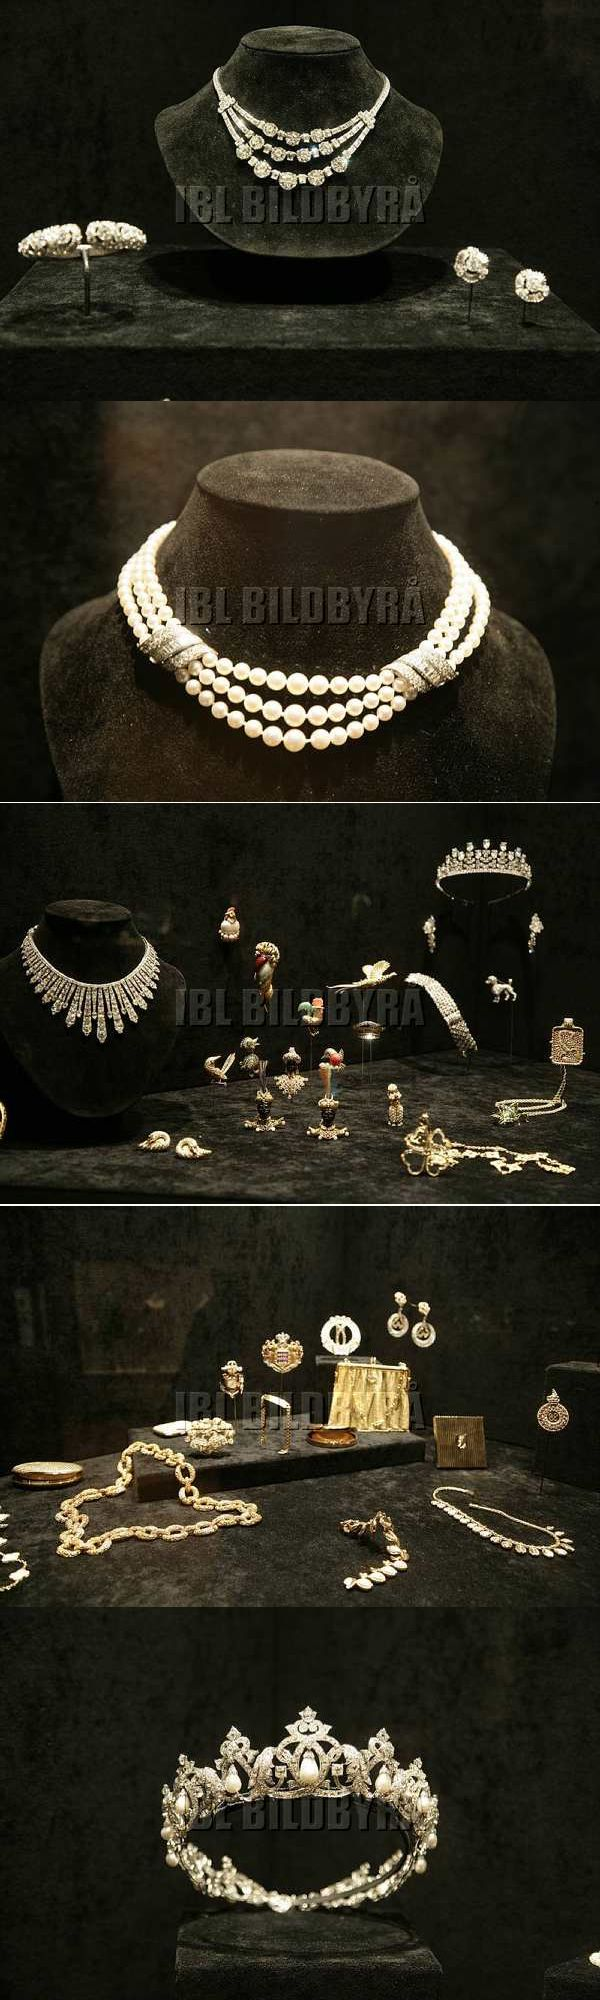 Exhibit of jewelry belonging to HSH Princess Grace of Monaco